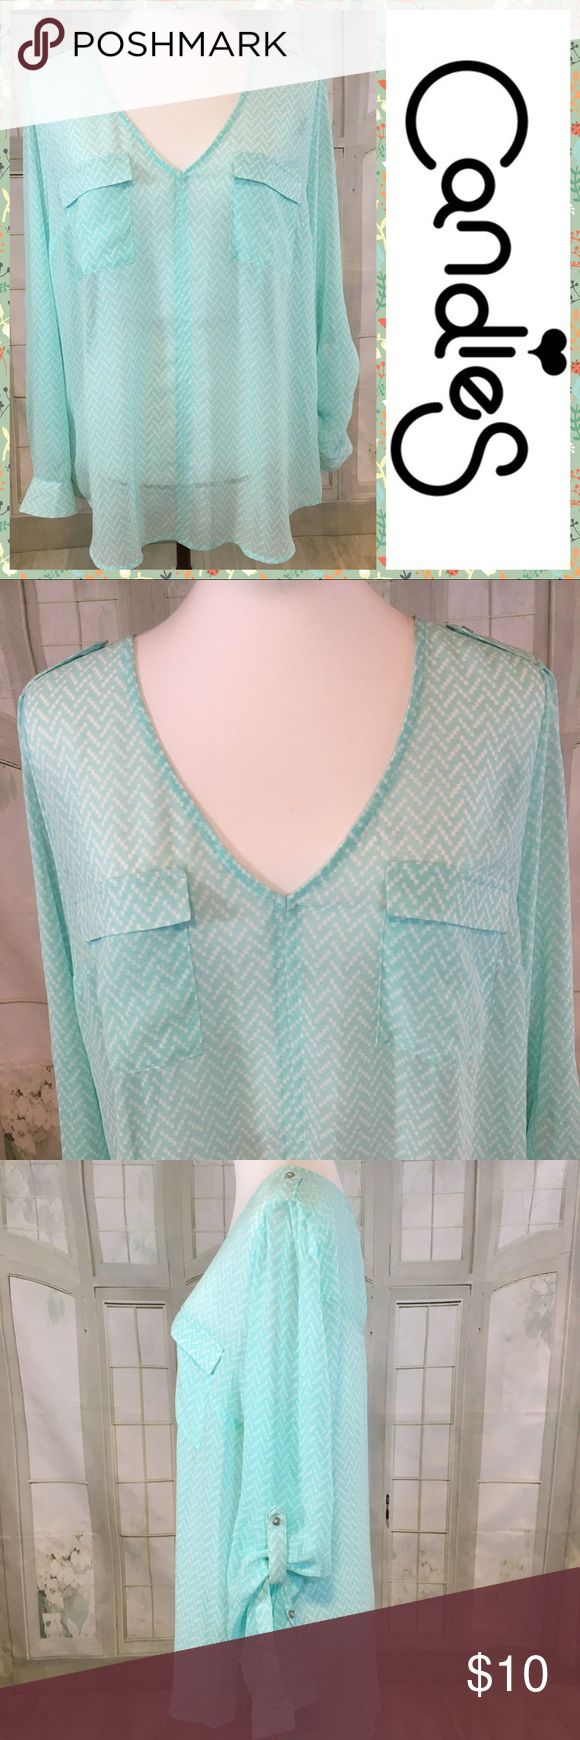 "Candies Sheet Tunic V Neck SZ XL Candies Sheet Tunic V Neck SZ XL. Light Turquoise Color with White Dotted pattern. Sheer V Neck with double front pockets (real) Flowing Tunic.  Perfect as Swim cover or Top with tank underneath (or not). Sleeves can be worn 3/4 buttoned or long. Excellent condition - no flaws. 100% Polyester.   Pit to Pit:  23"". Length:  28"". Candie's Swim Coverups"